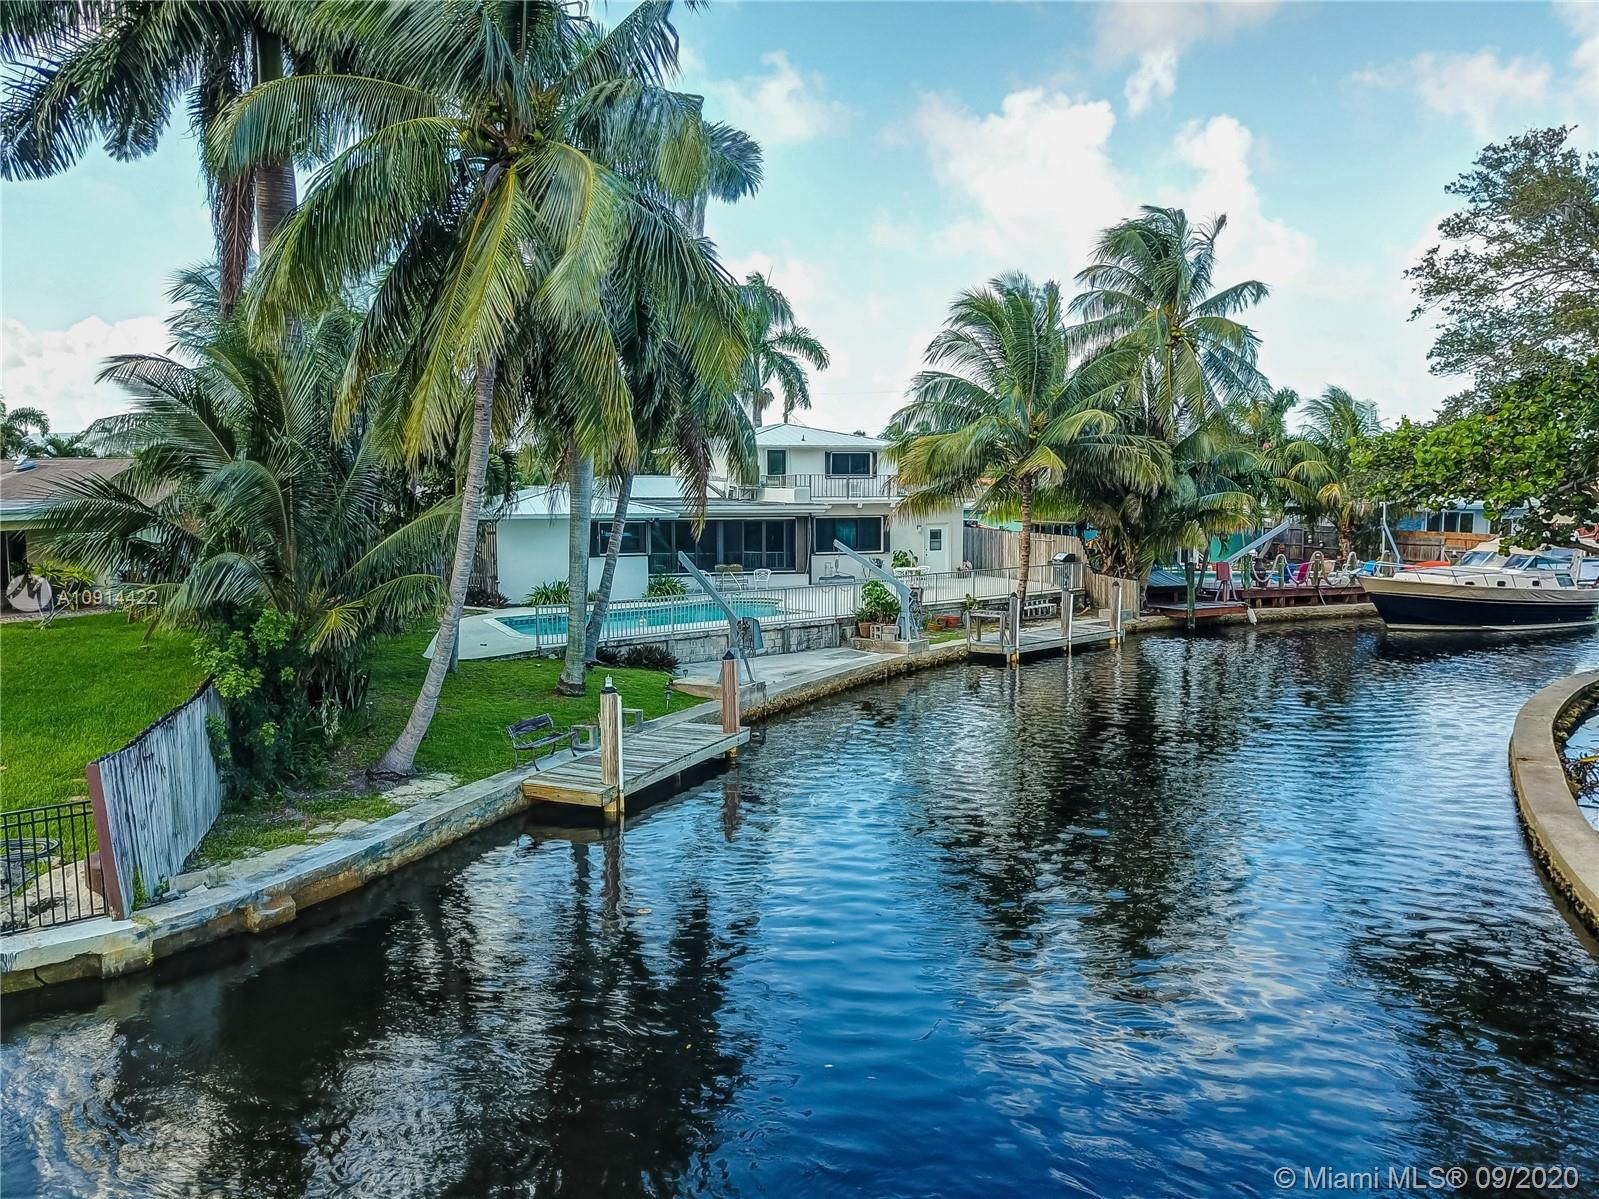 Commandingly situated on a sprawling lot in coveted Melaleuca Gardens, this transcendent waterfront oasis delivers a boating enthusiast's dream come true. Boasting 99 feet of prized water frontage on tranquil Dania Cut-off Canal, the home is perfectly positioned for elevated living at its finest and sets the stage w/ an array of lush coconut palms, an invigorating pool, an expansive pool deck, a second-floor sun deck, and attached workshop. Sparing absolutely no detail, the home comes fully equipped with hurricane windows and doors, recently installed in 2017, accordion shutters, and a hard-wired Generac Generator for added peace of mind. Idyllically situated, you'll also enjoy unparalleled proximity to a tantalizing range of shops, restaurants, entertainment, beaches, & so much more.